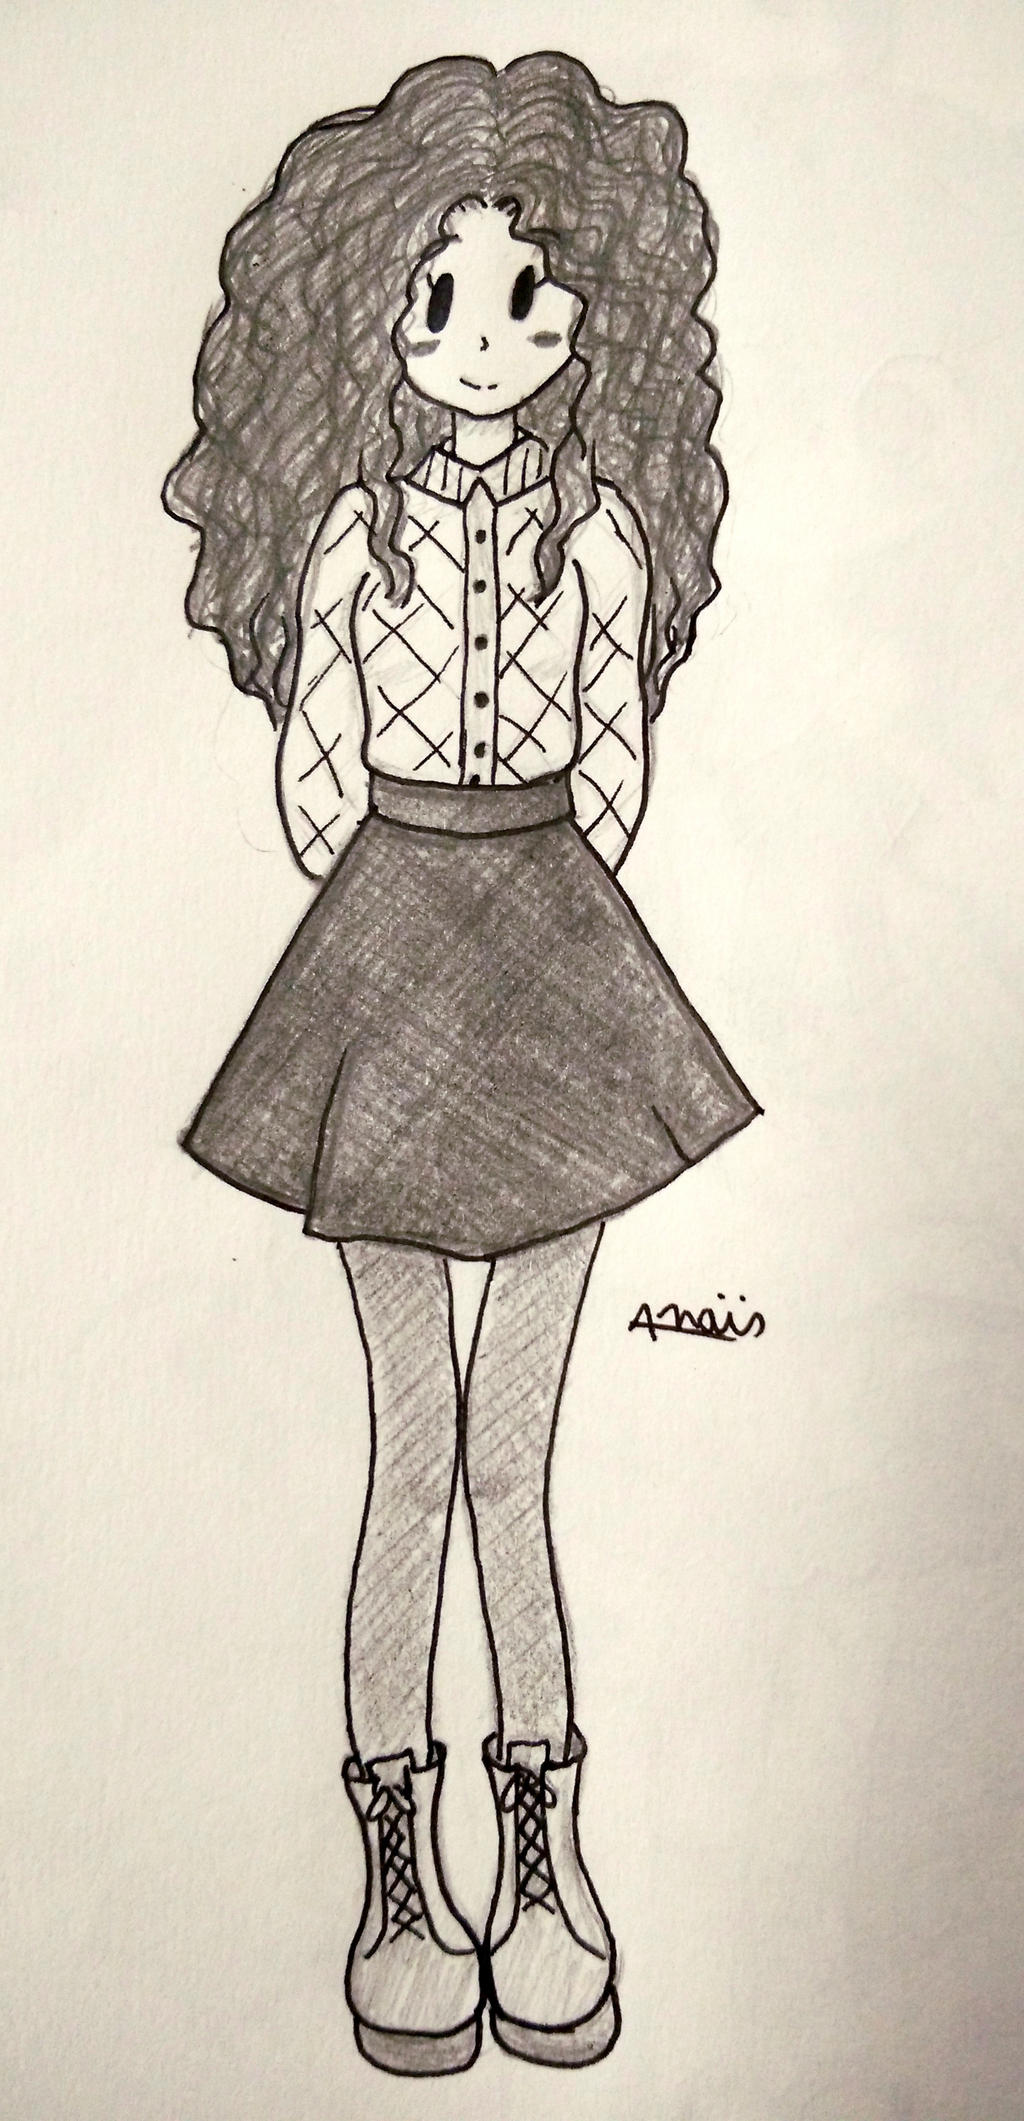 Curly Hair Sketch by Chemicalgirl7 on DeviantArt